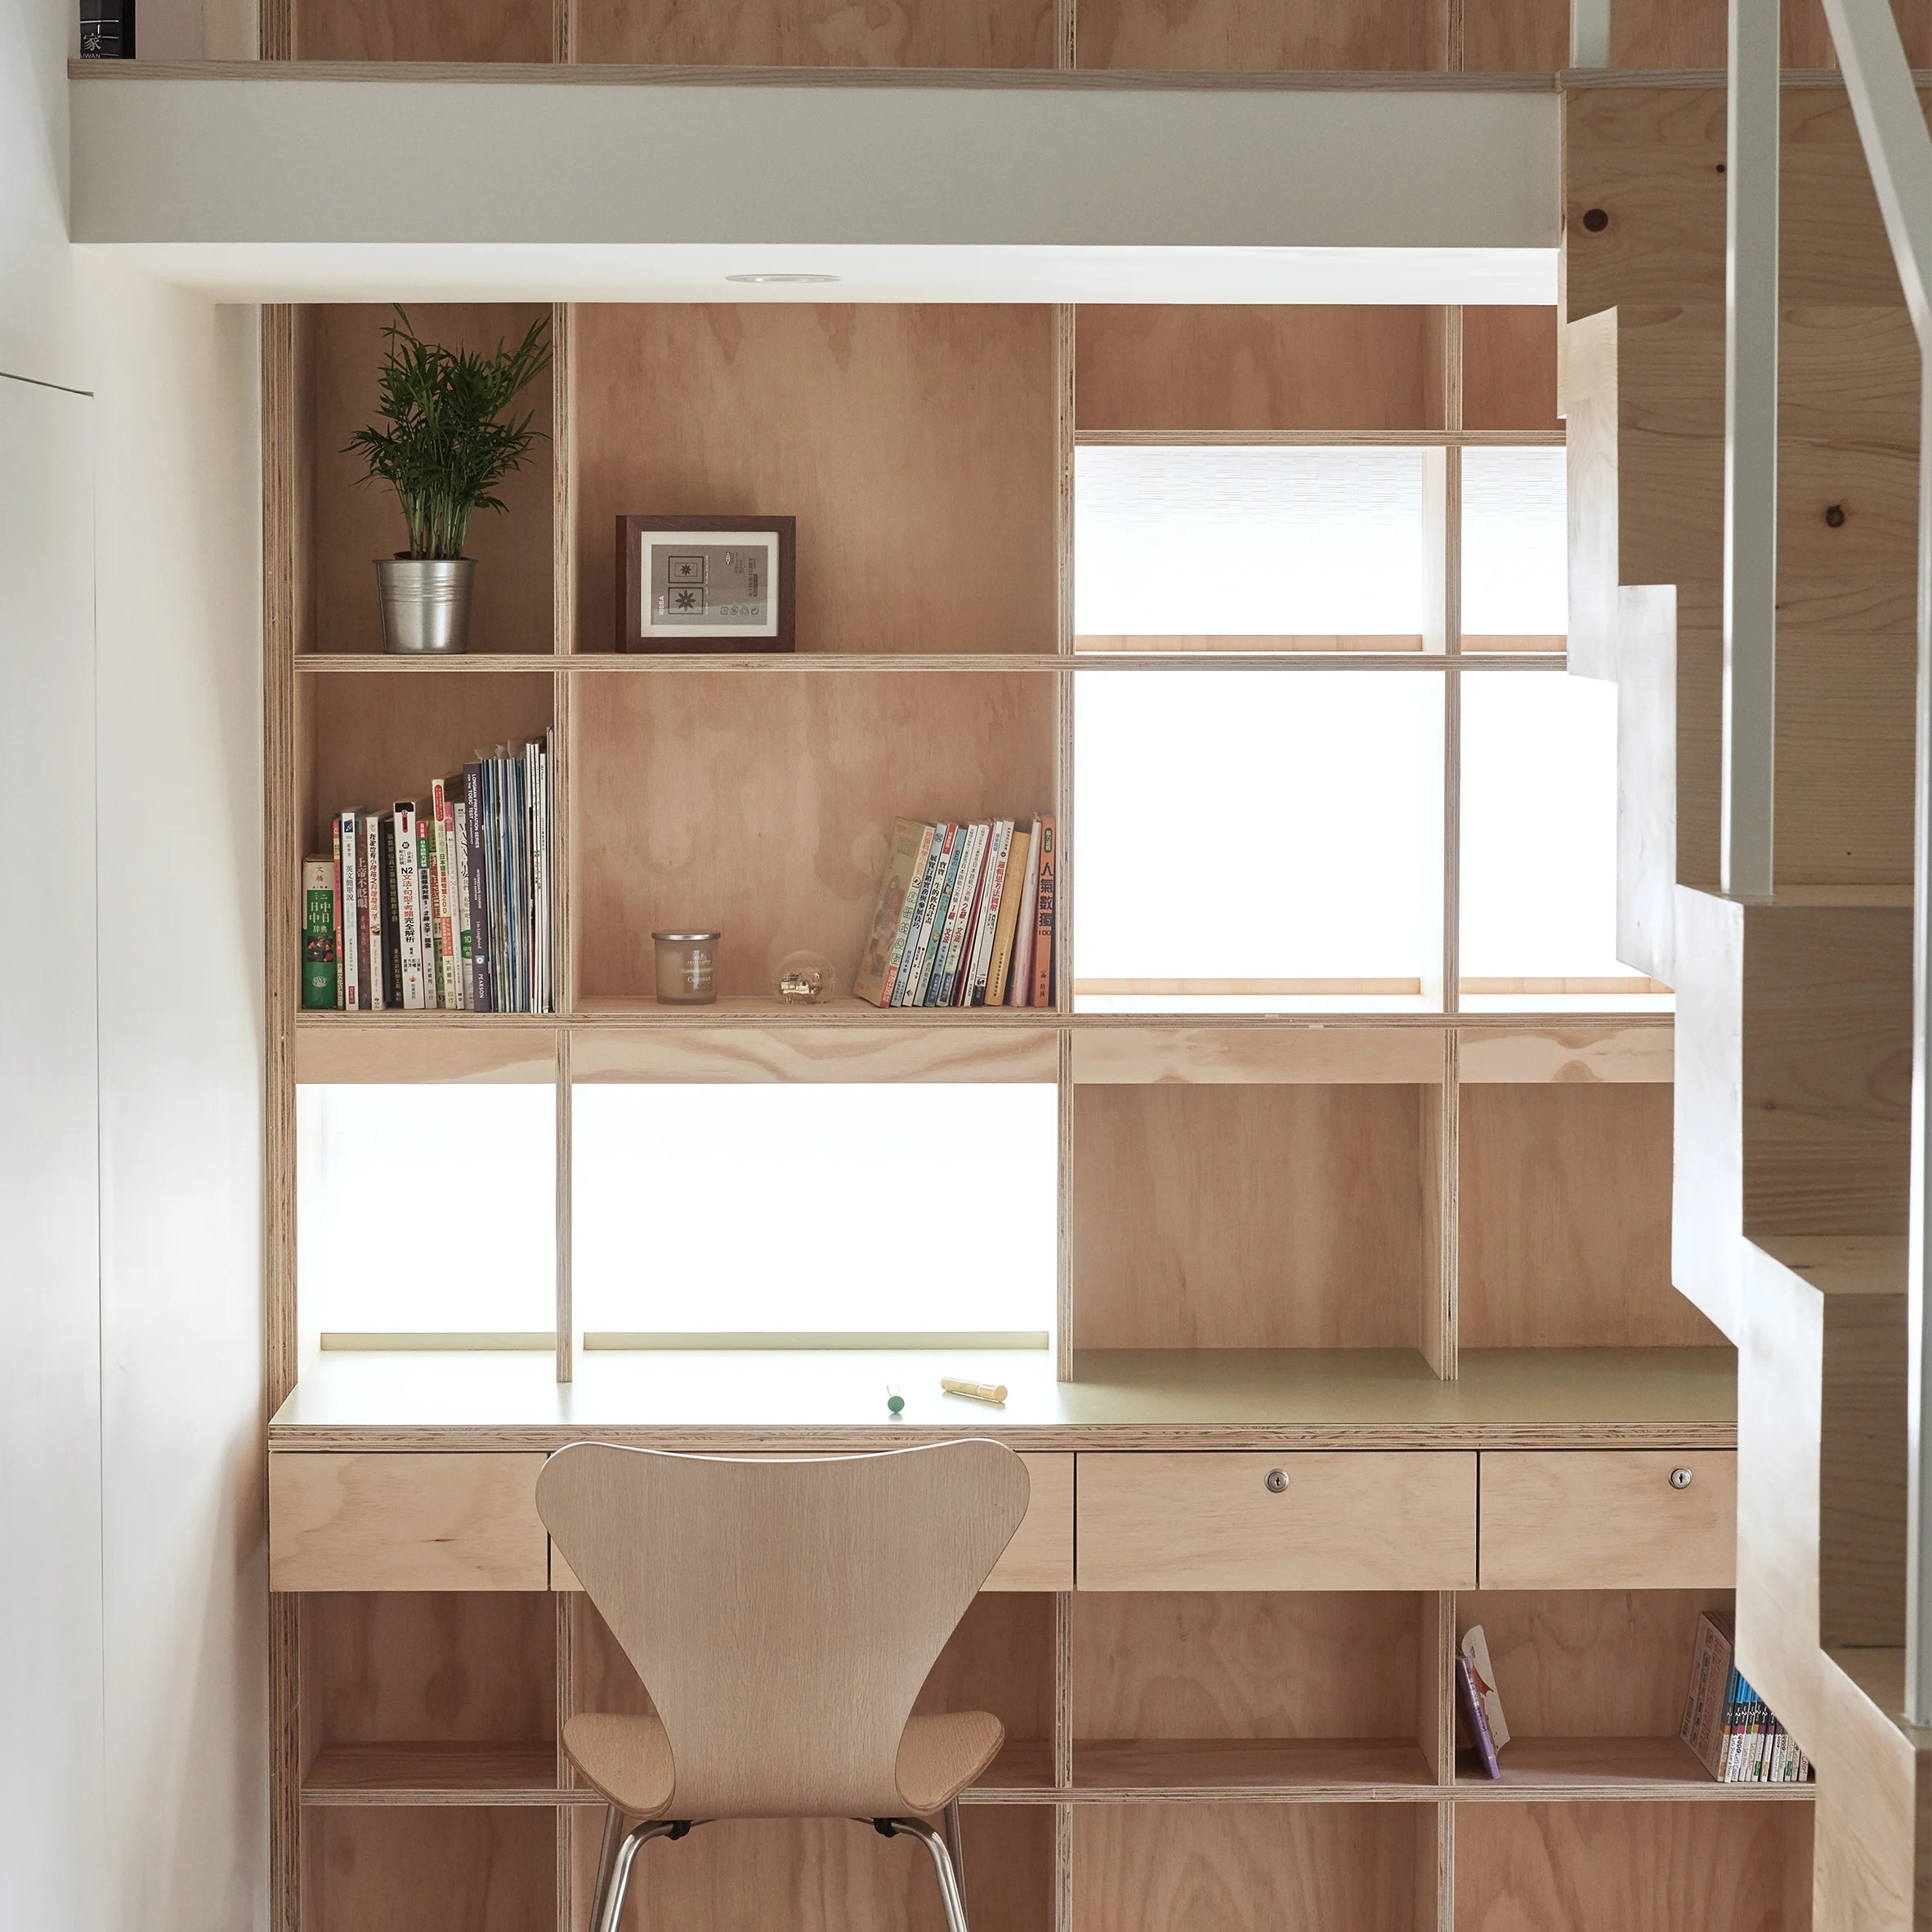 10 of the most popular homes with clever storage on Pinterest